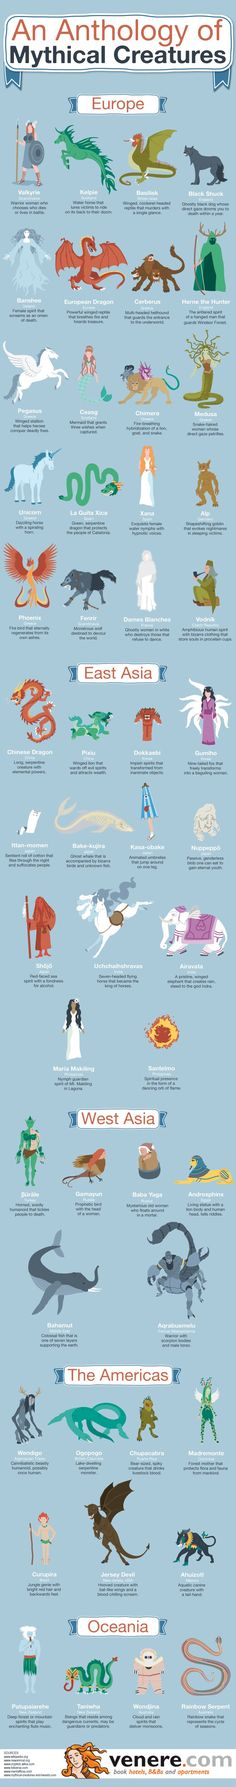 Mythical Creatures of the World.